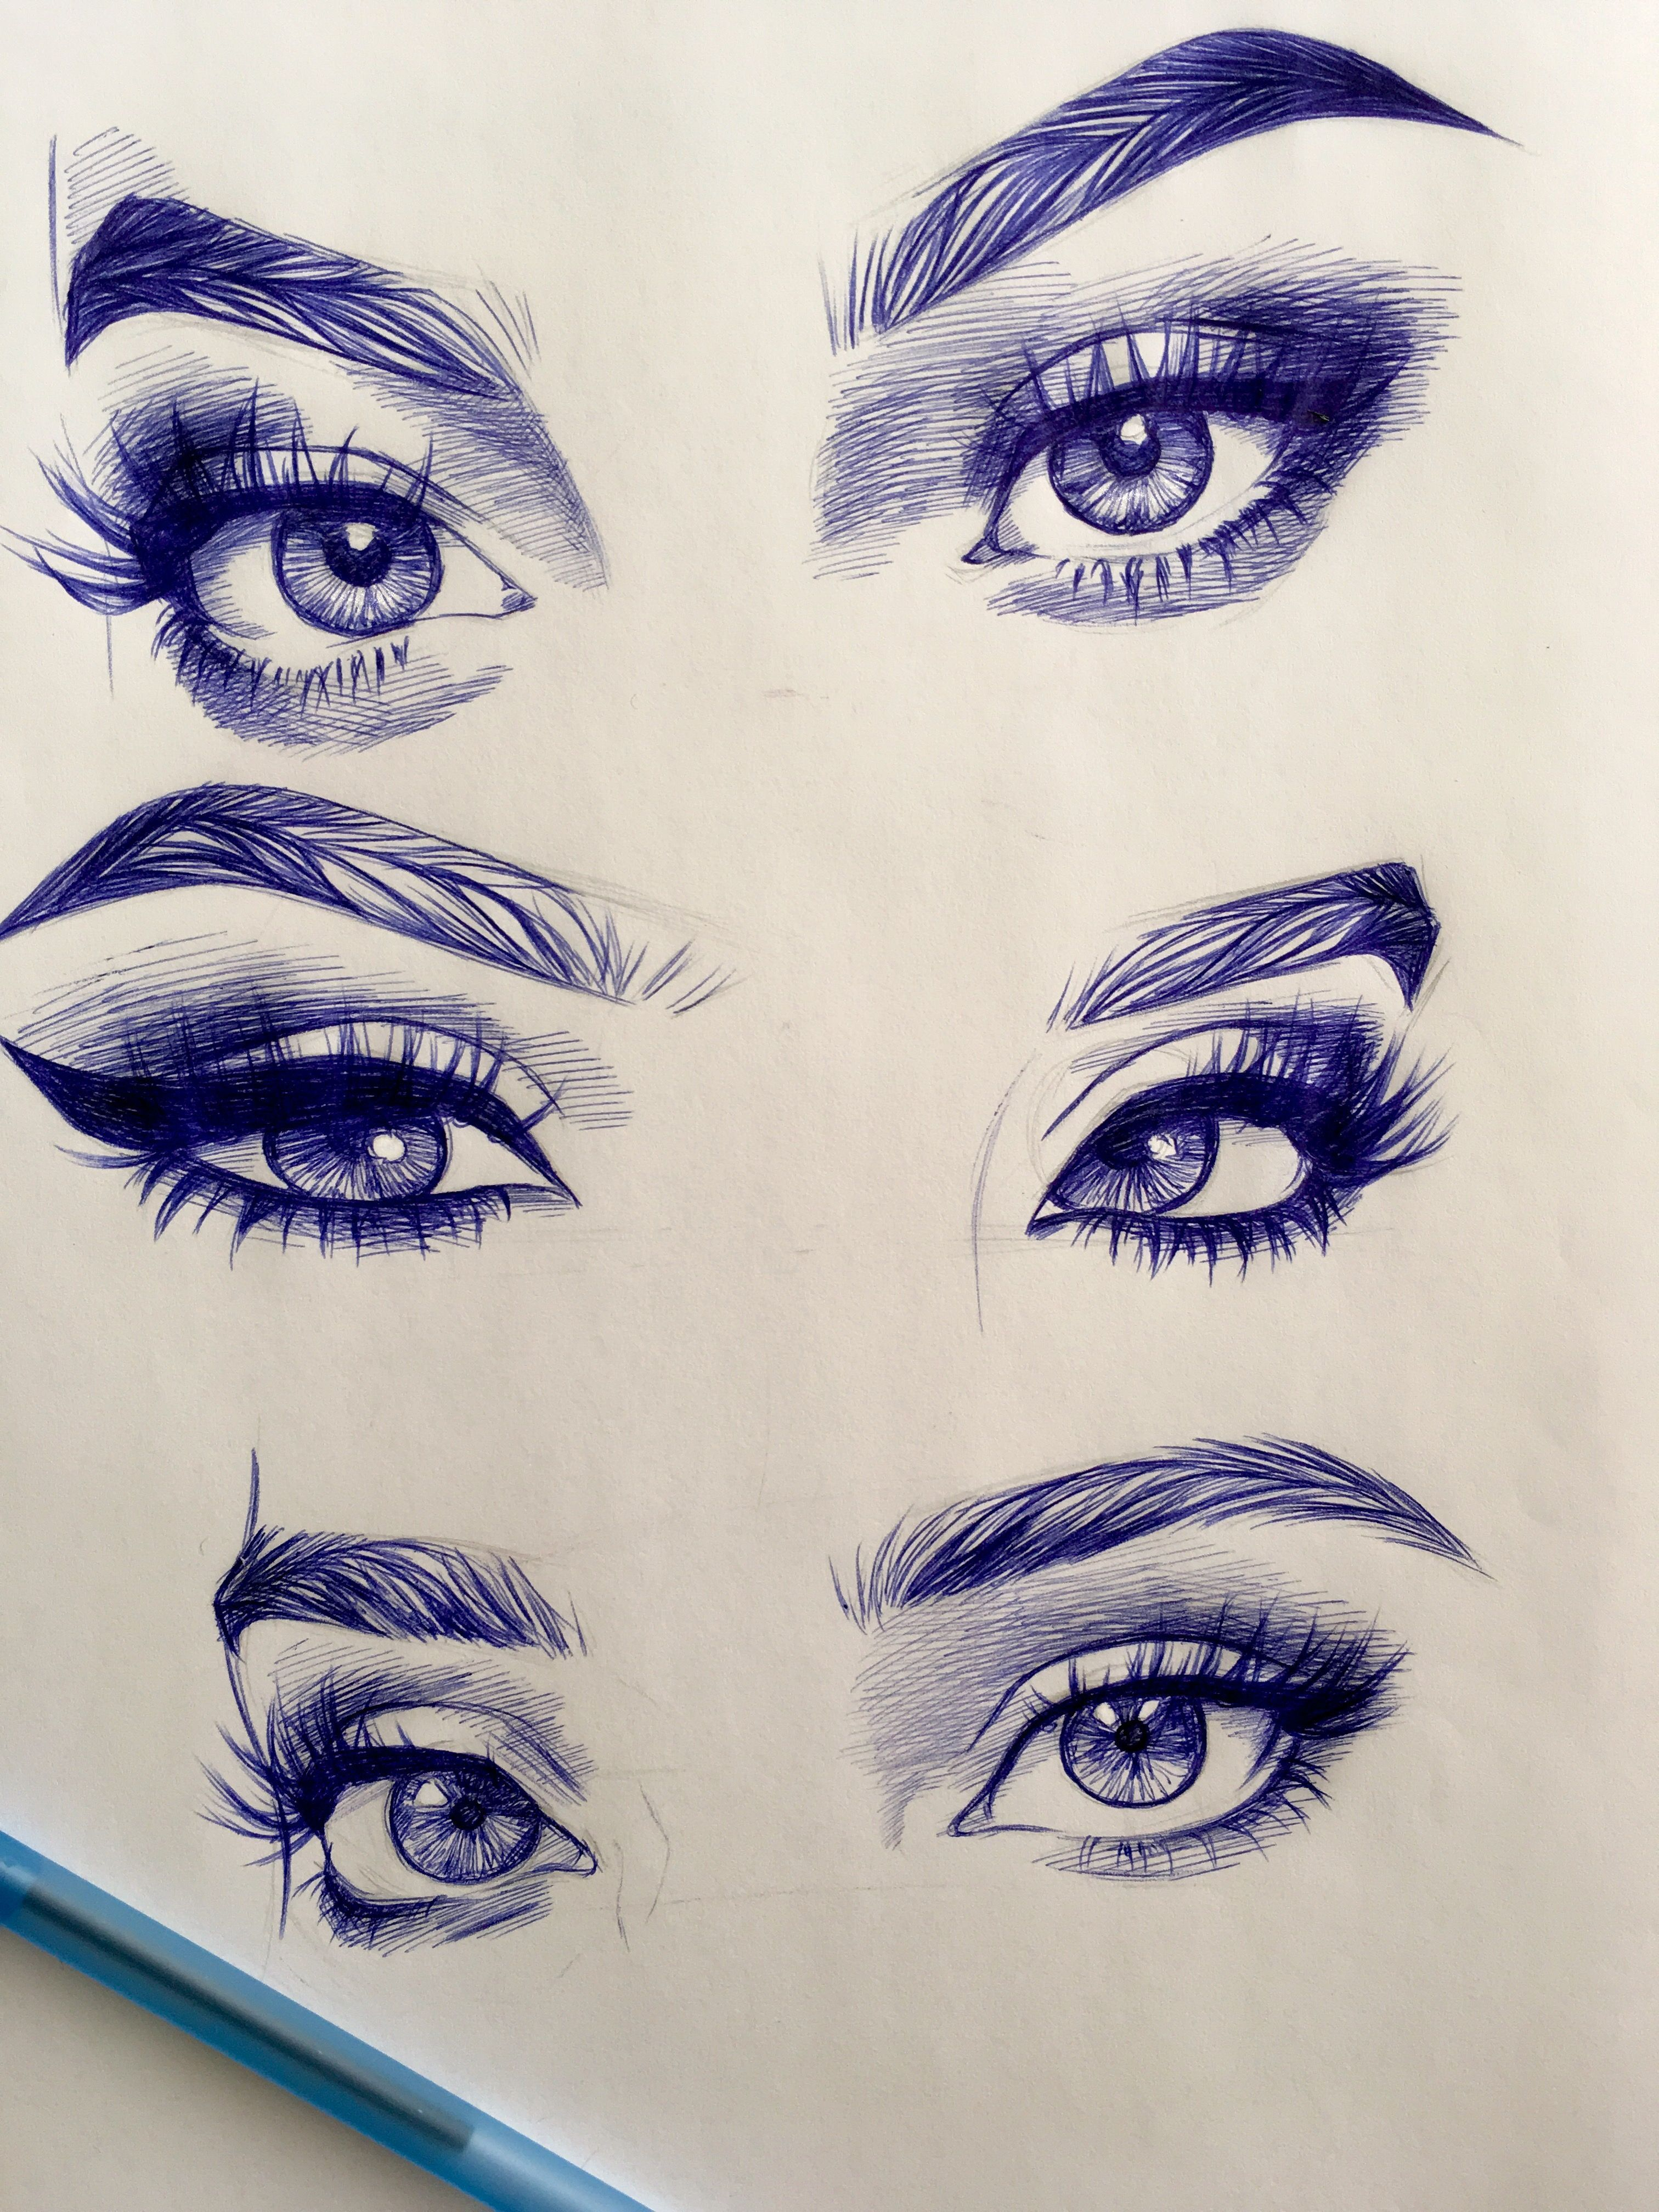 Beginners Eye Makeup: Drawing Eyes Sketch Makeup Art Eyelashes Easy Beginners